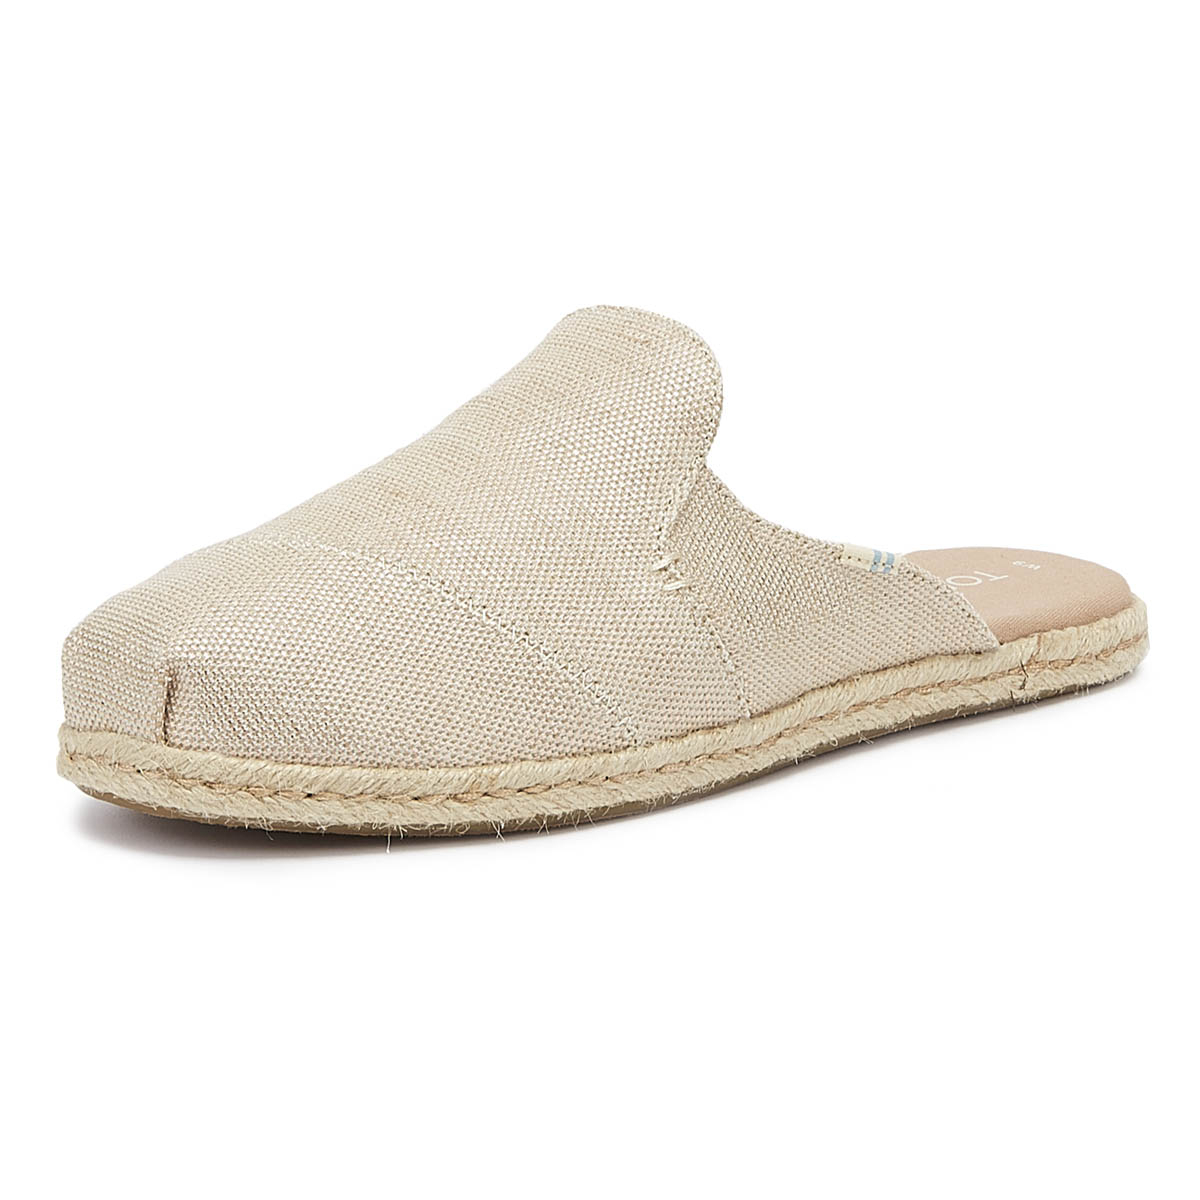 7ac78a136b920 Details about TOMS Nova Womens Flats Rose Gold Espadrilles Slip On Ladies  Casual Shoes